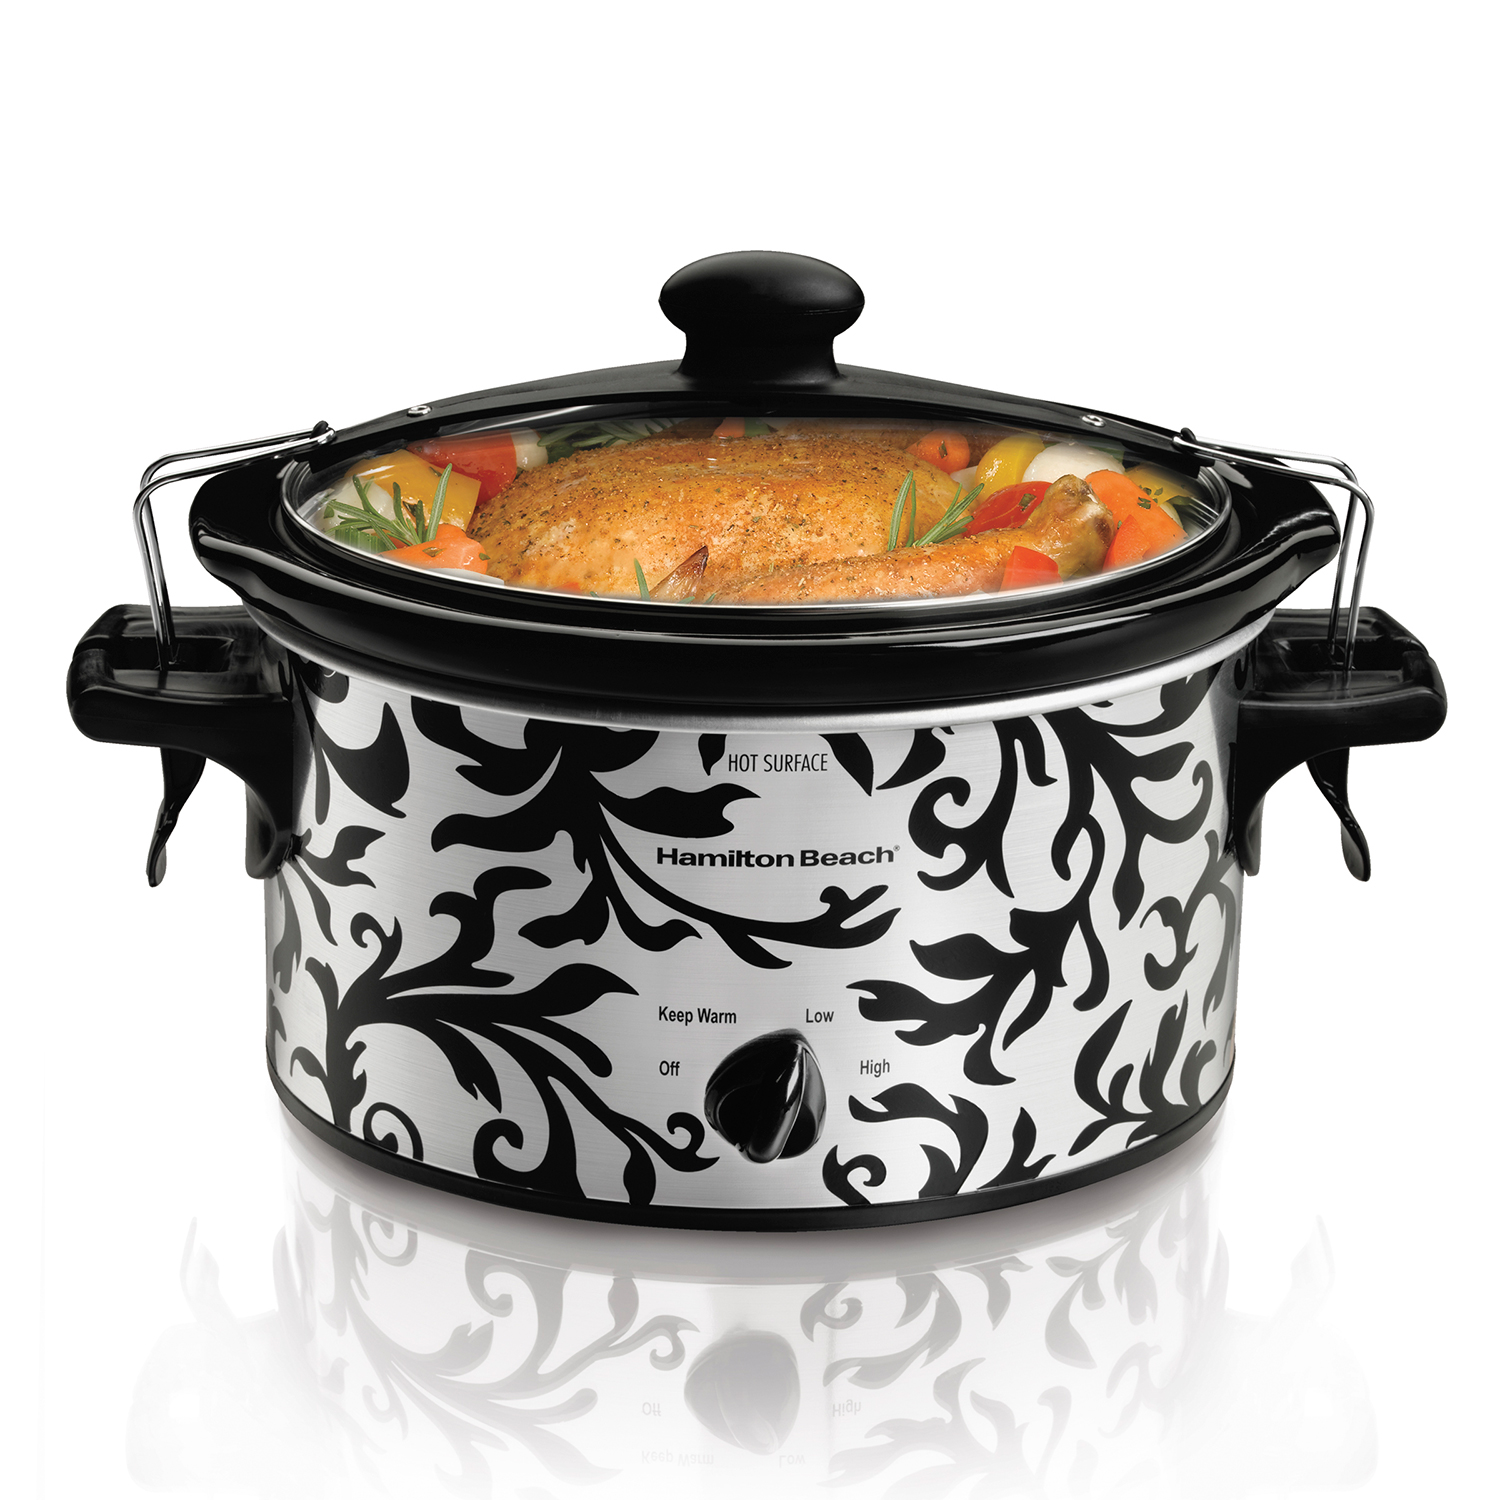 Stay or Go® 4 Quart Slow Cooker (33246)